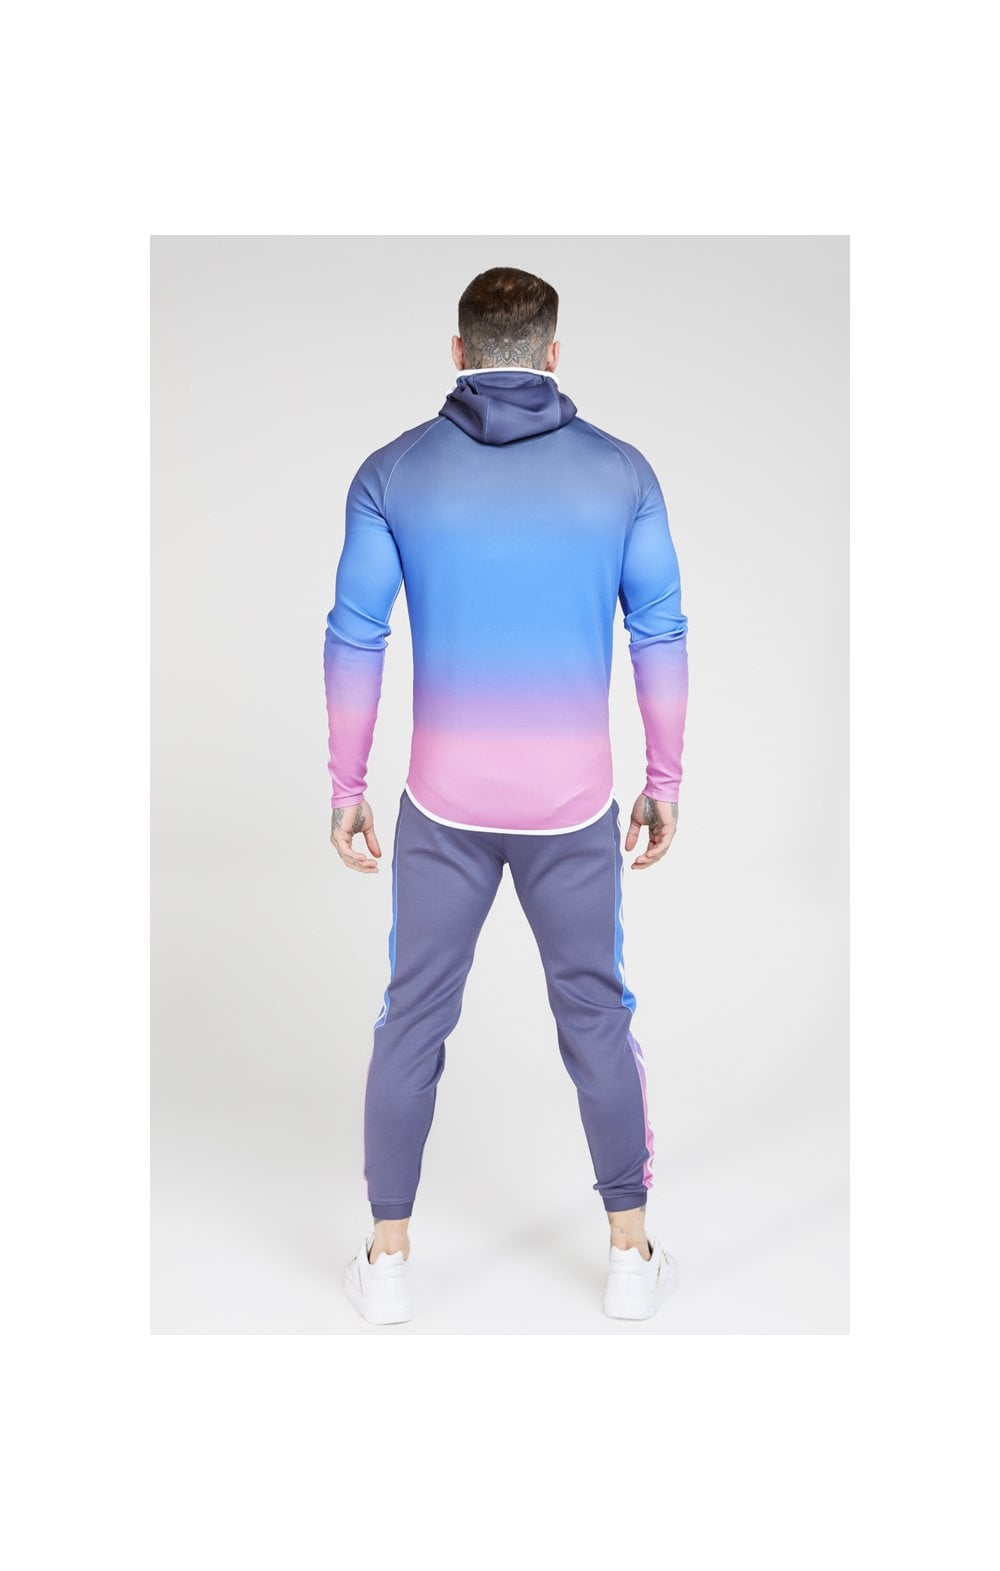 Load image into Gallery viewer, SikSilk Athlete Zip Through Fade Hoodie – Tri-Neon Fade (5)